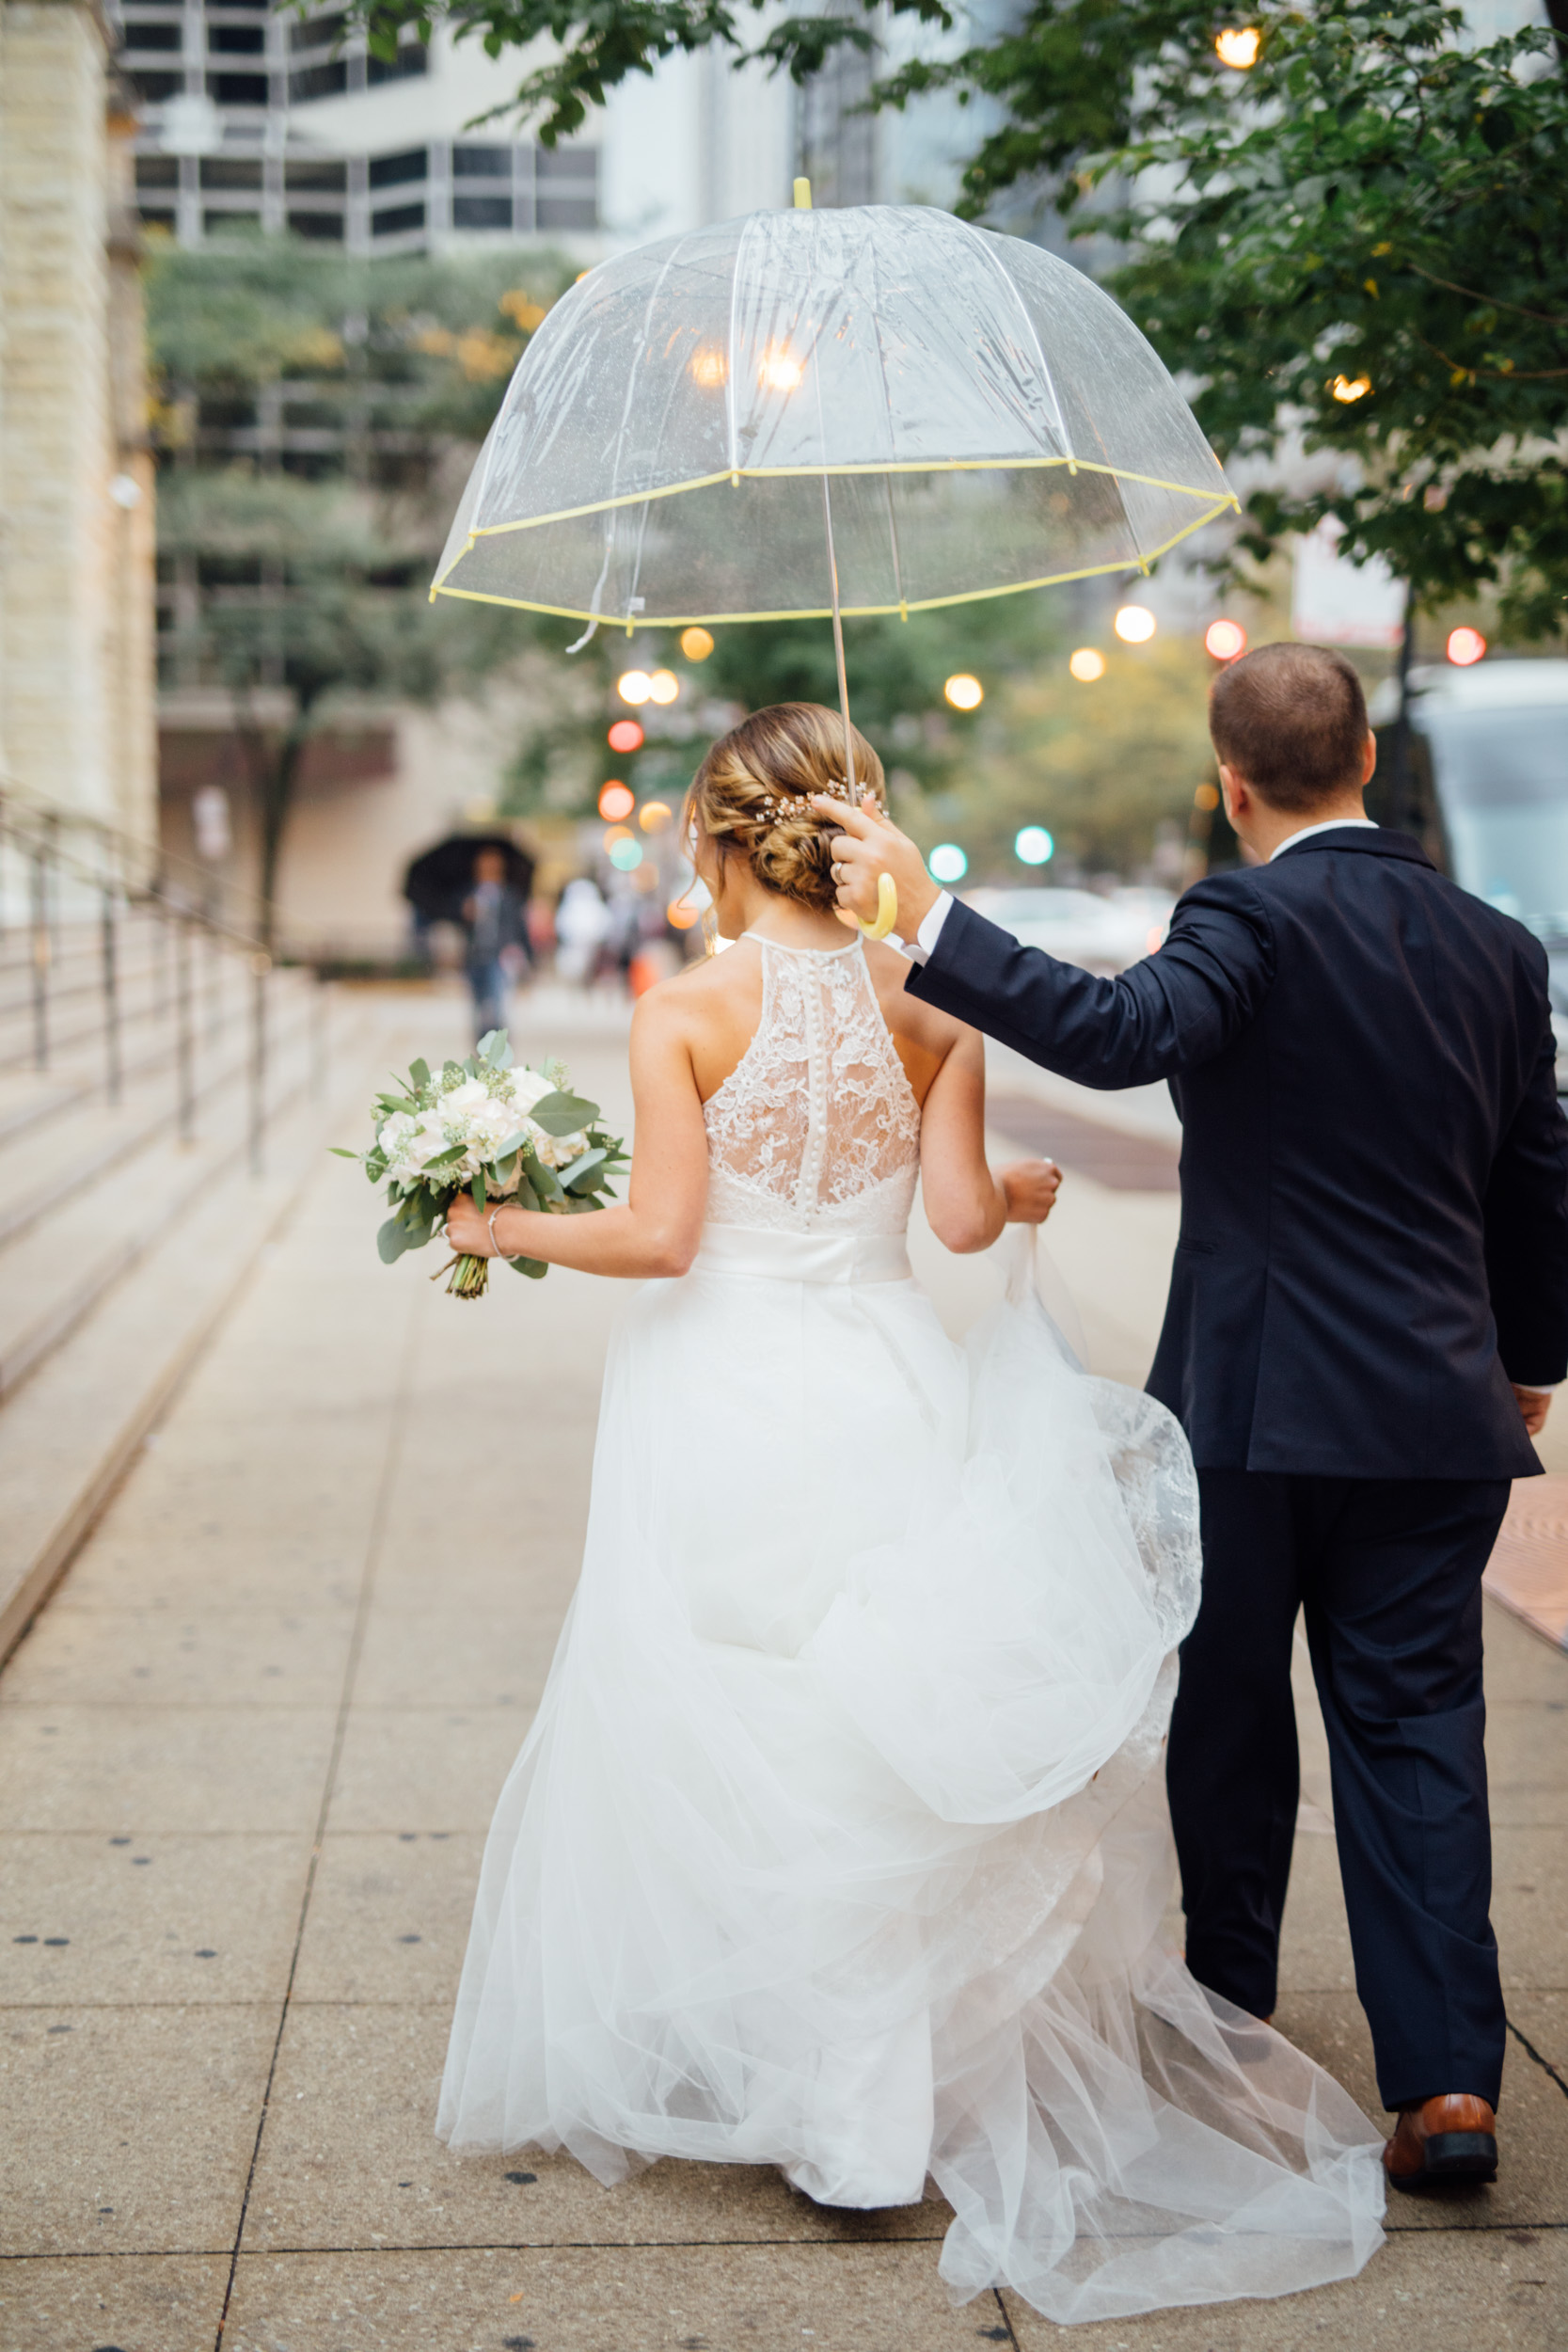 Downtown Chicago Wedding_Polly C Photography 1706165457.jpg